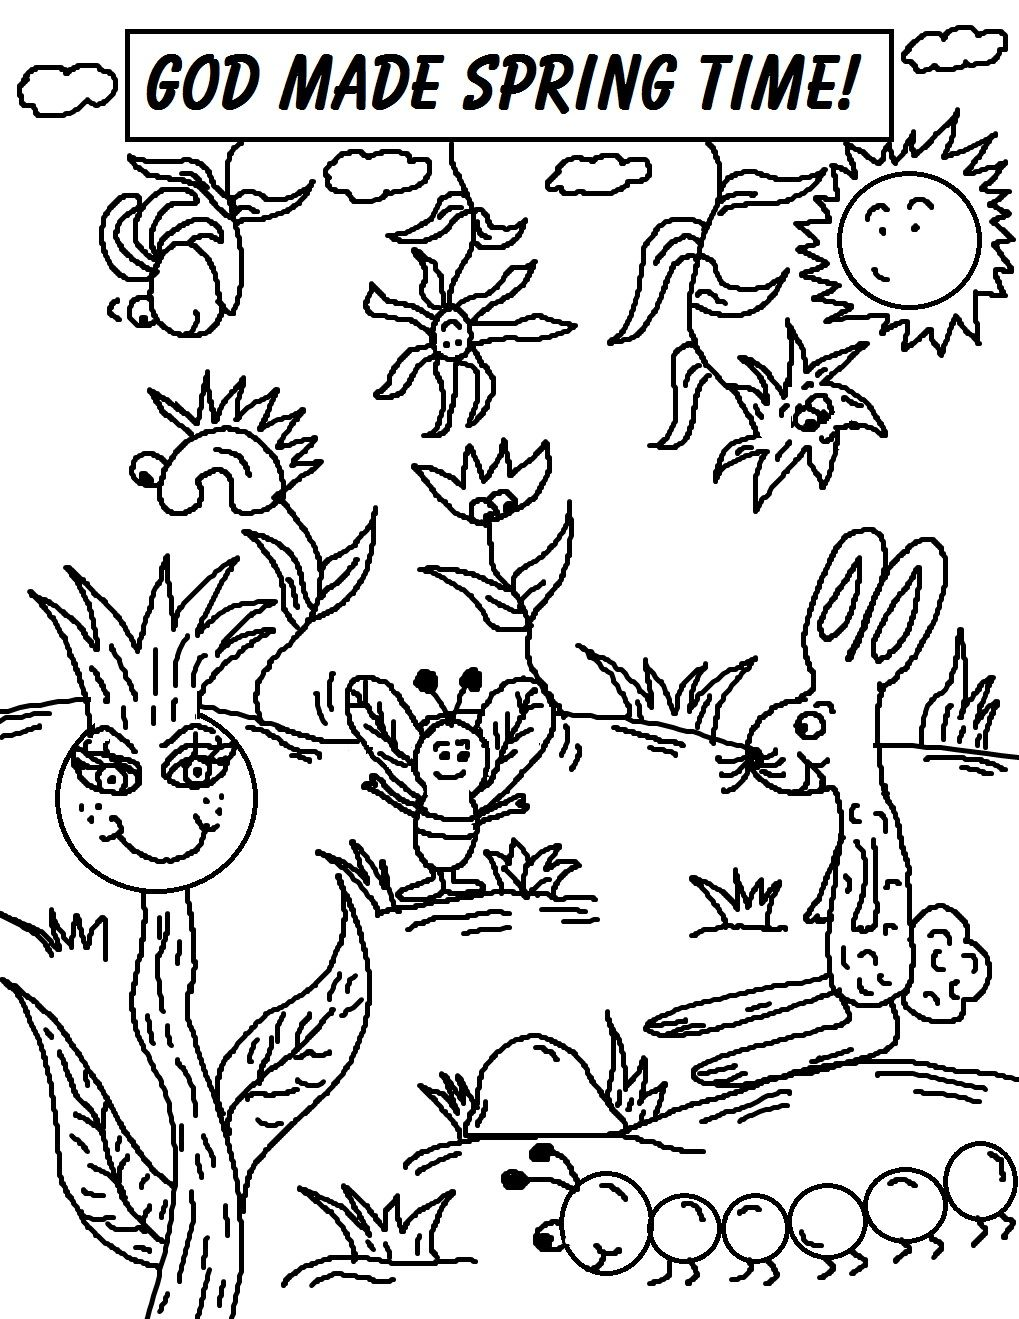 Printable Spring Coloring Pages | Creation Printables | Pinterest ...